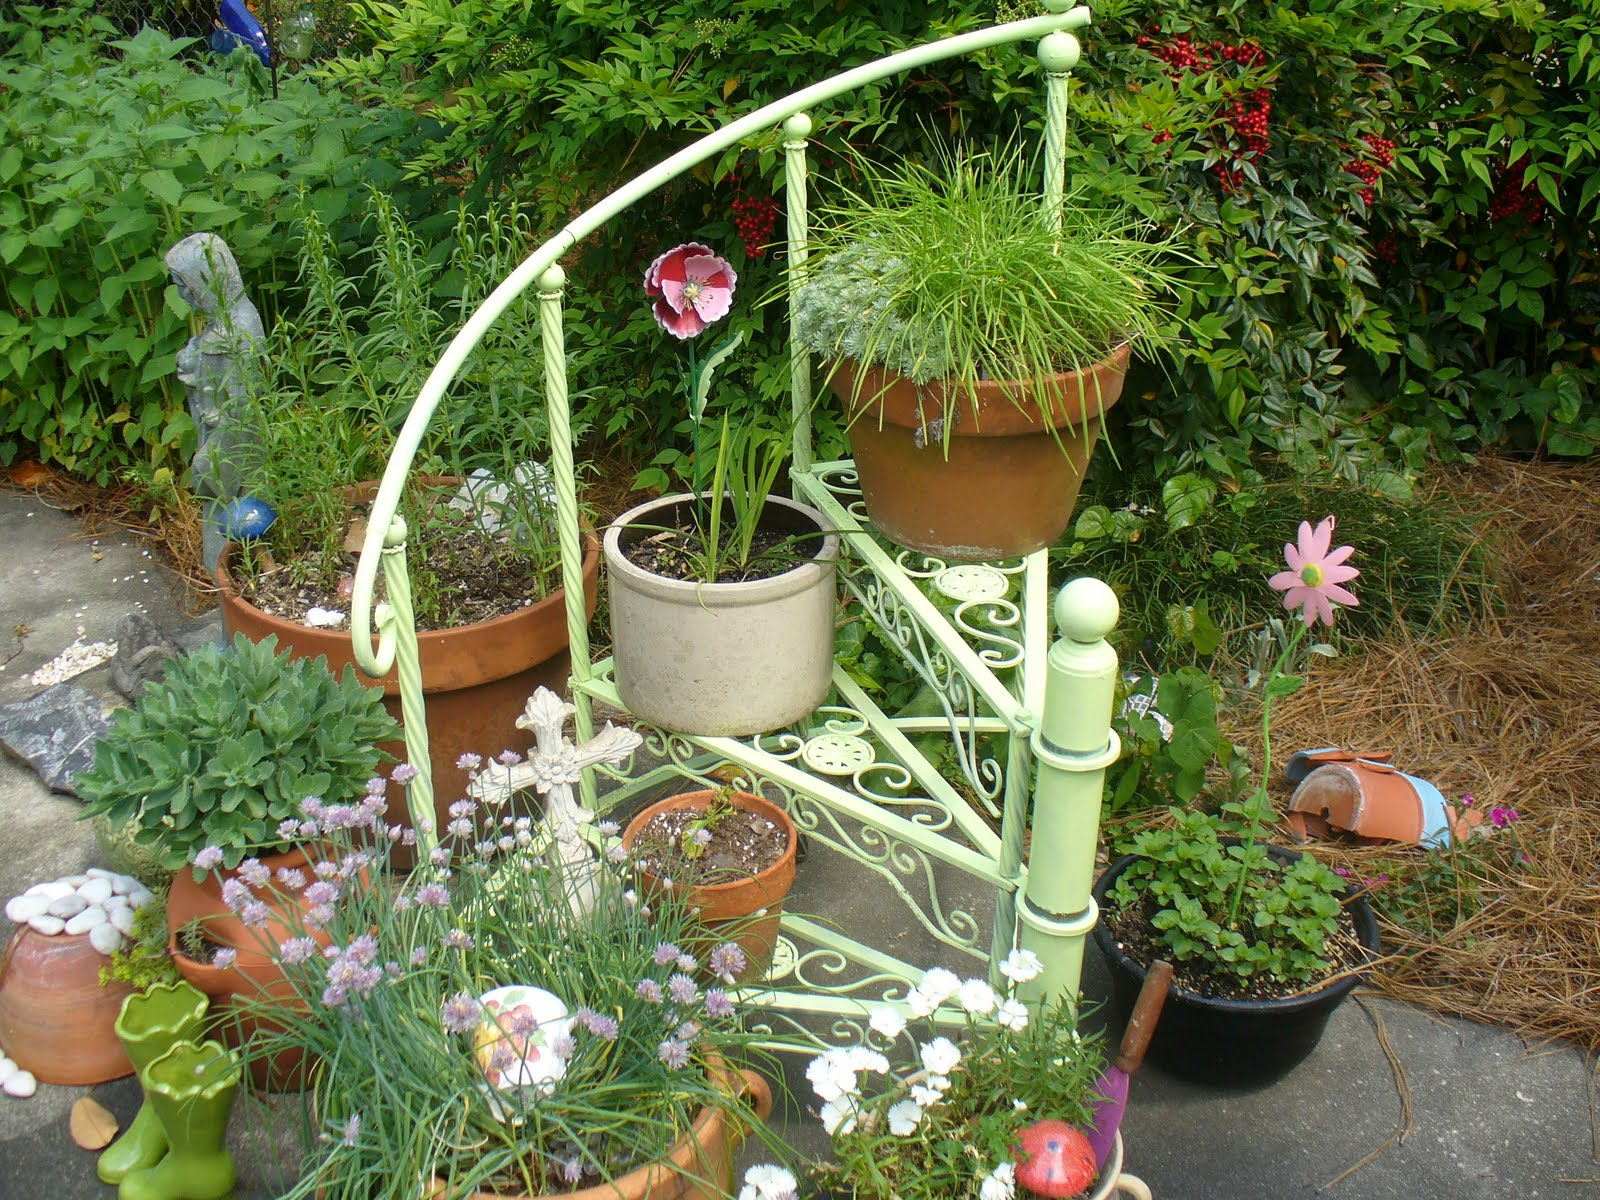 The country diary of a southern lady whimsical garden for Bottle garden ideas